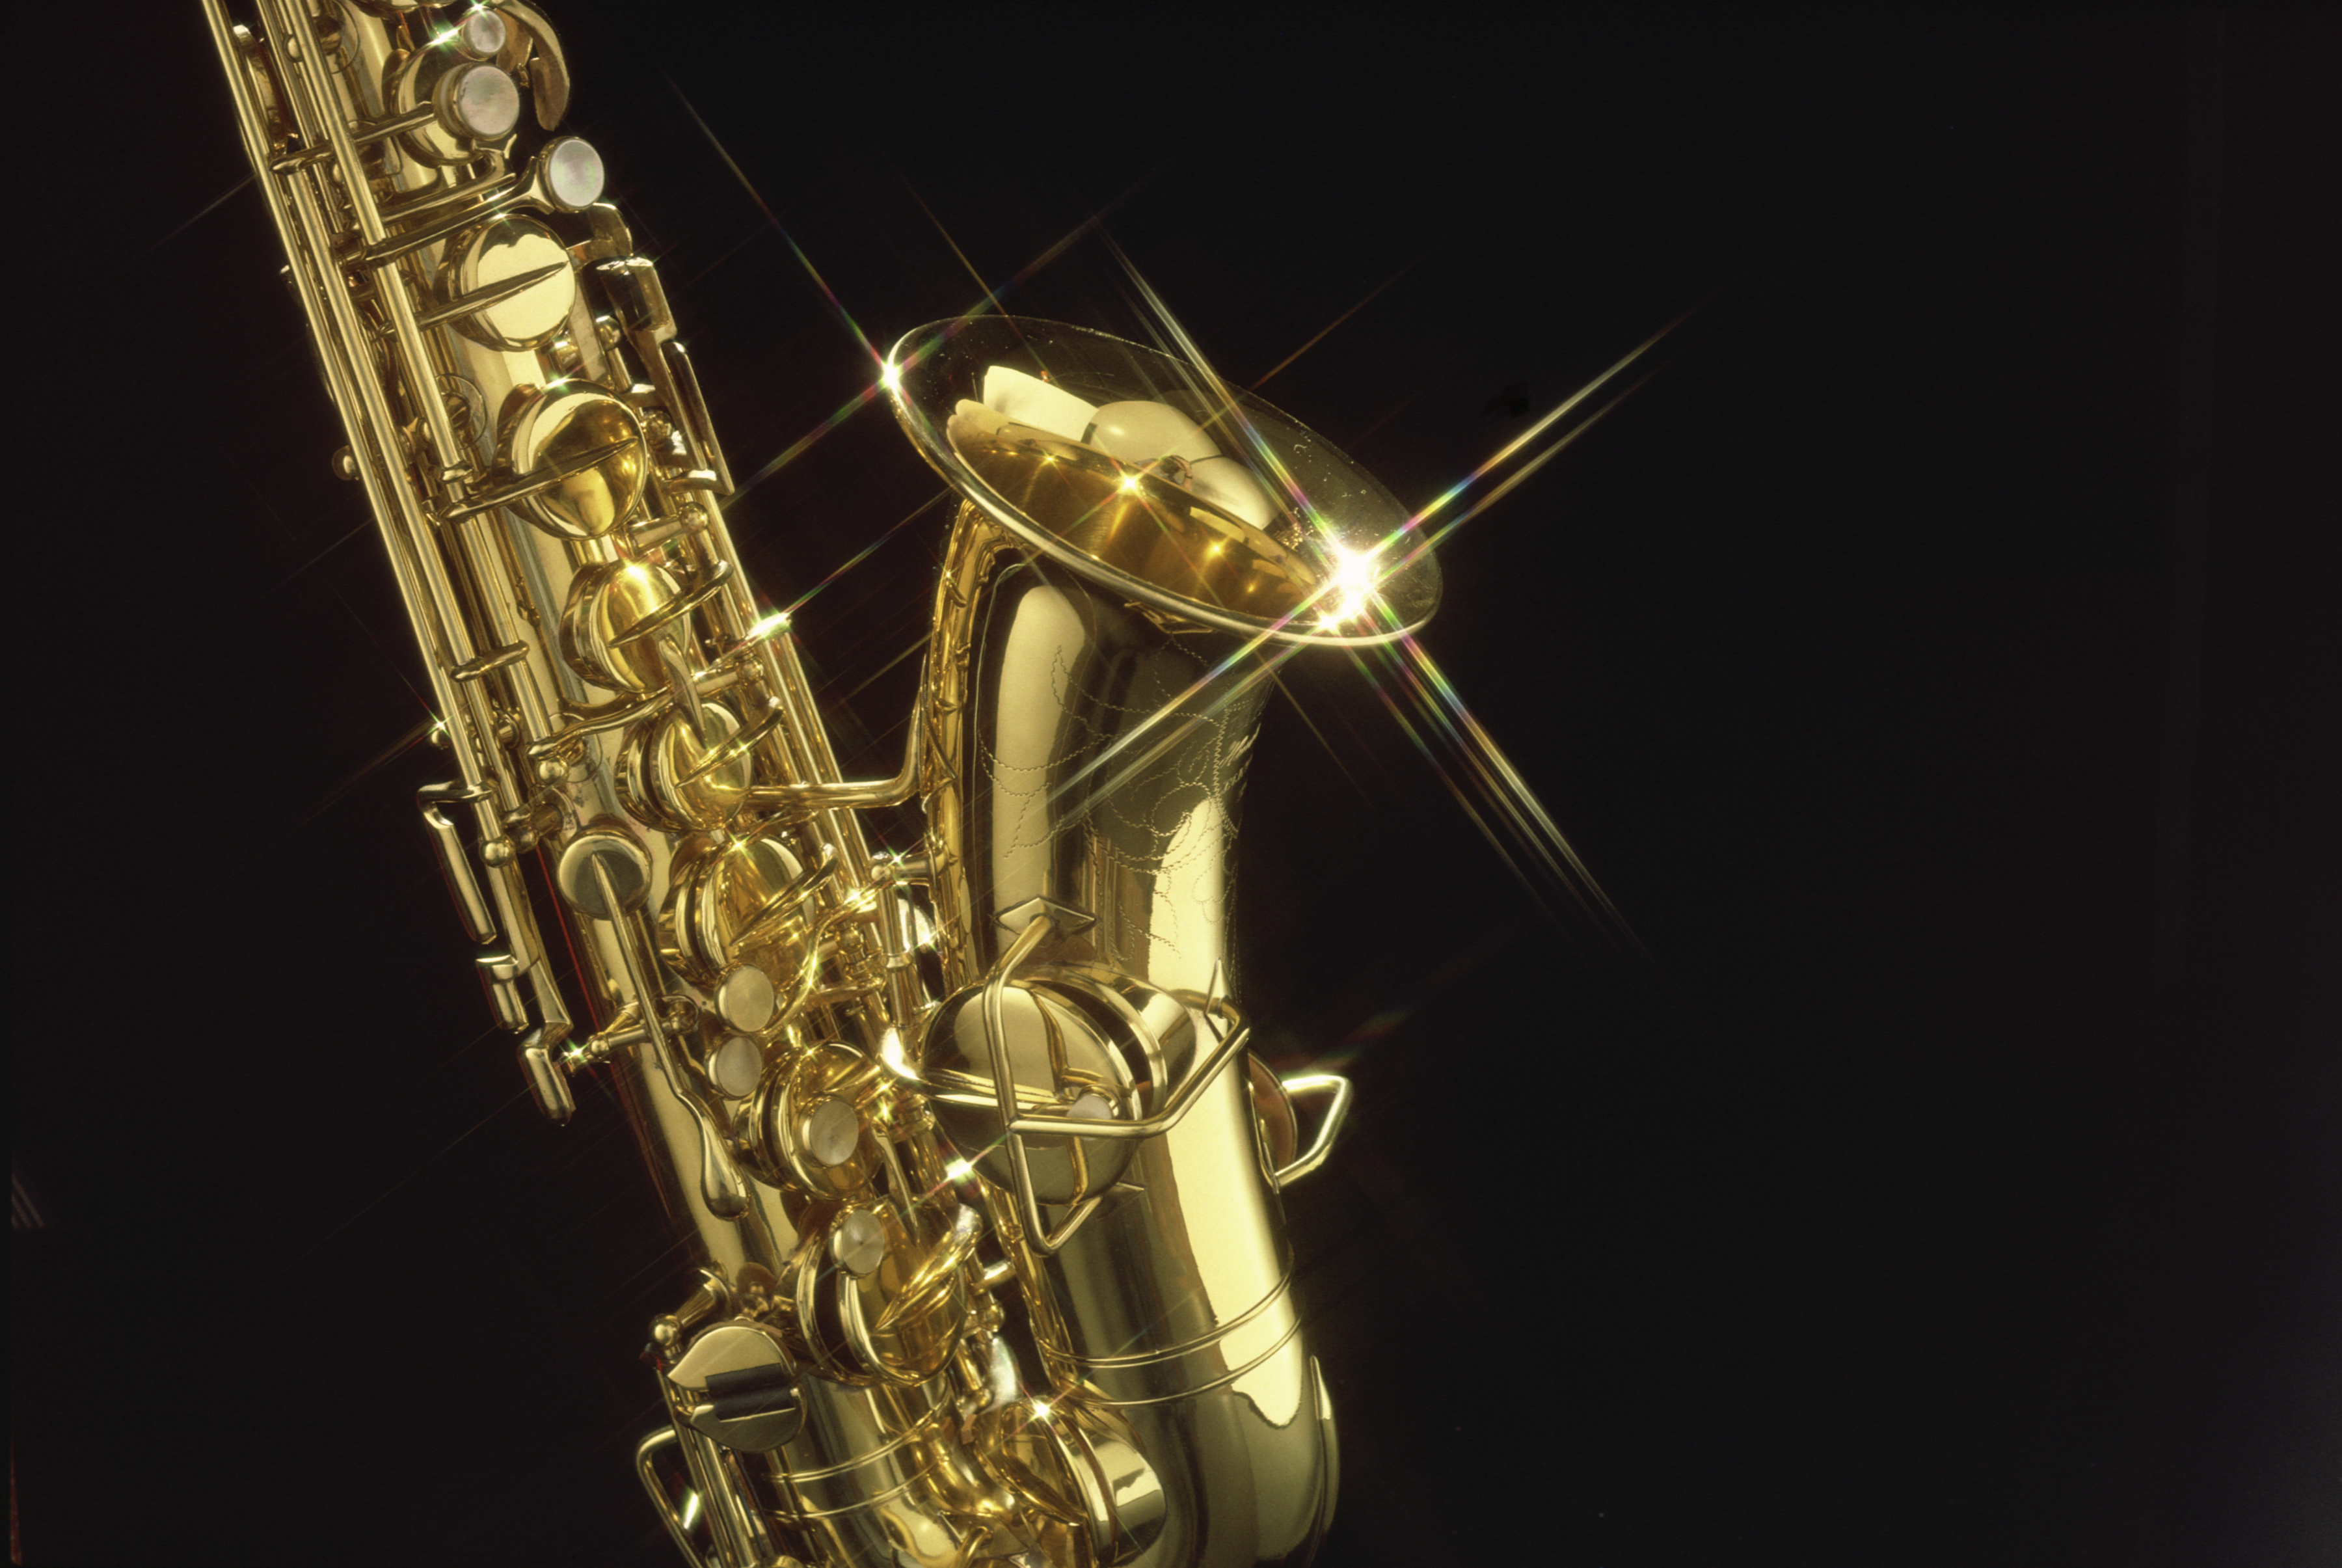 How to Find a Trombone's Model Number | Our Pastimes